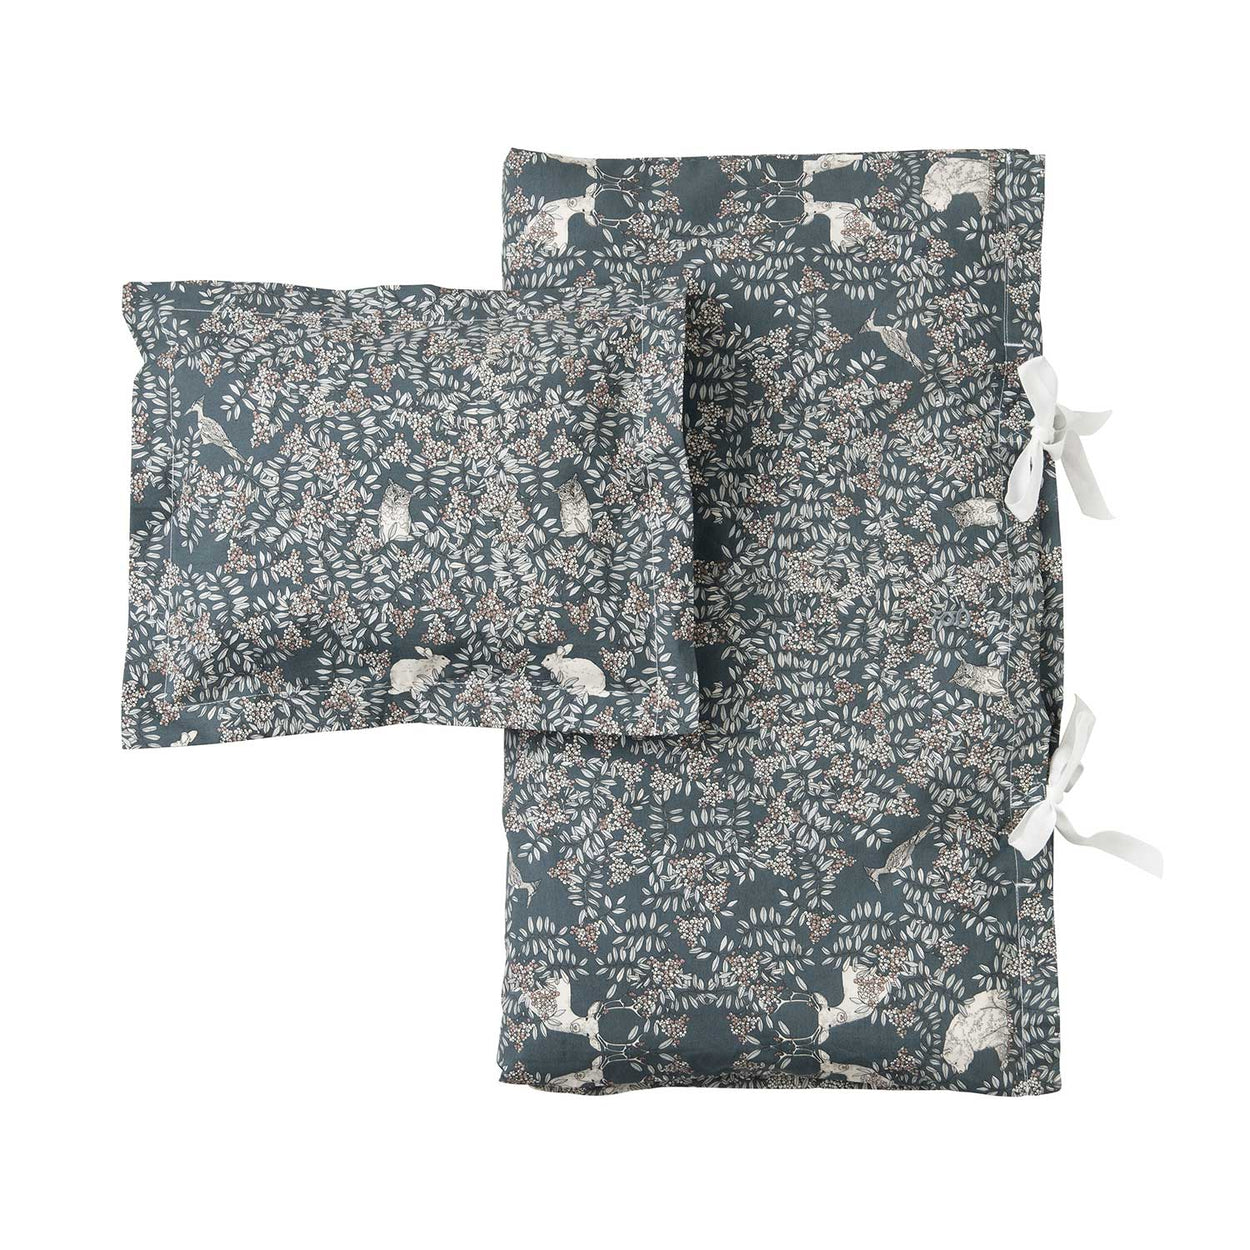 Garbo&Friends Fauna Bed Set Junior